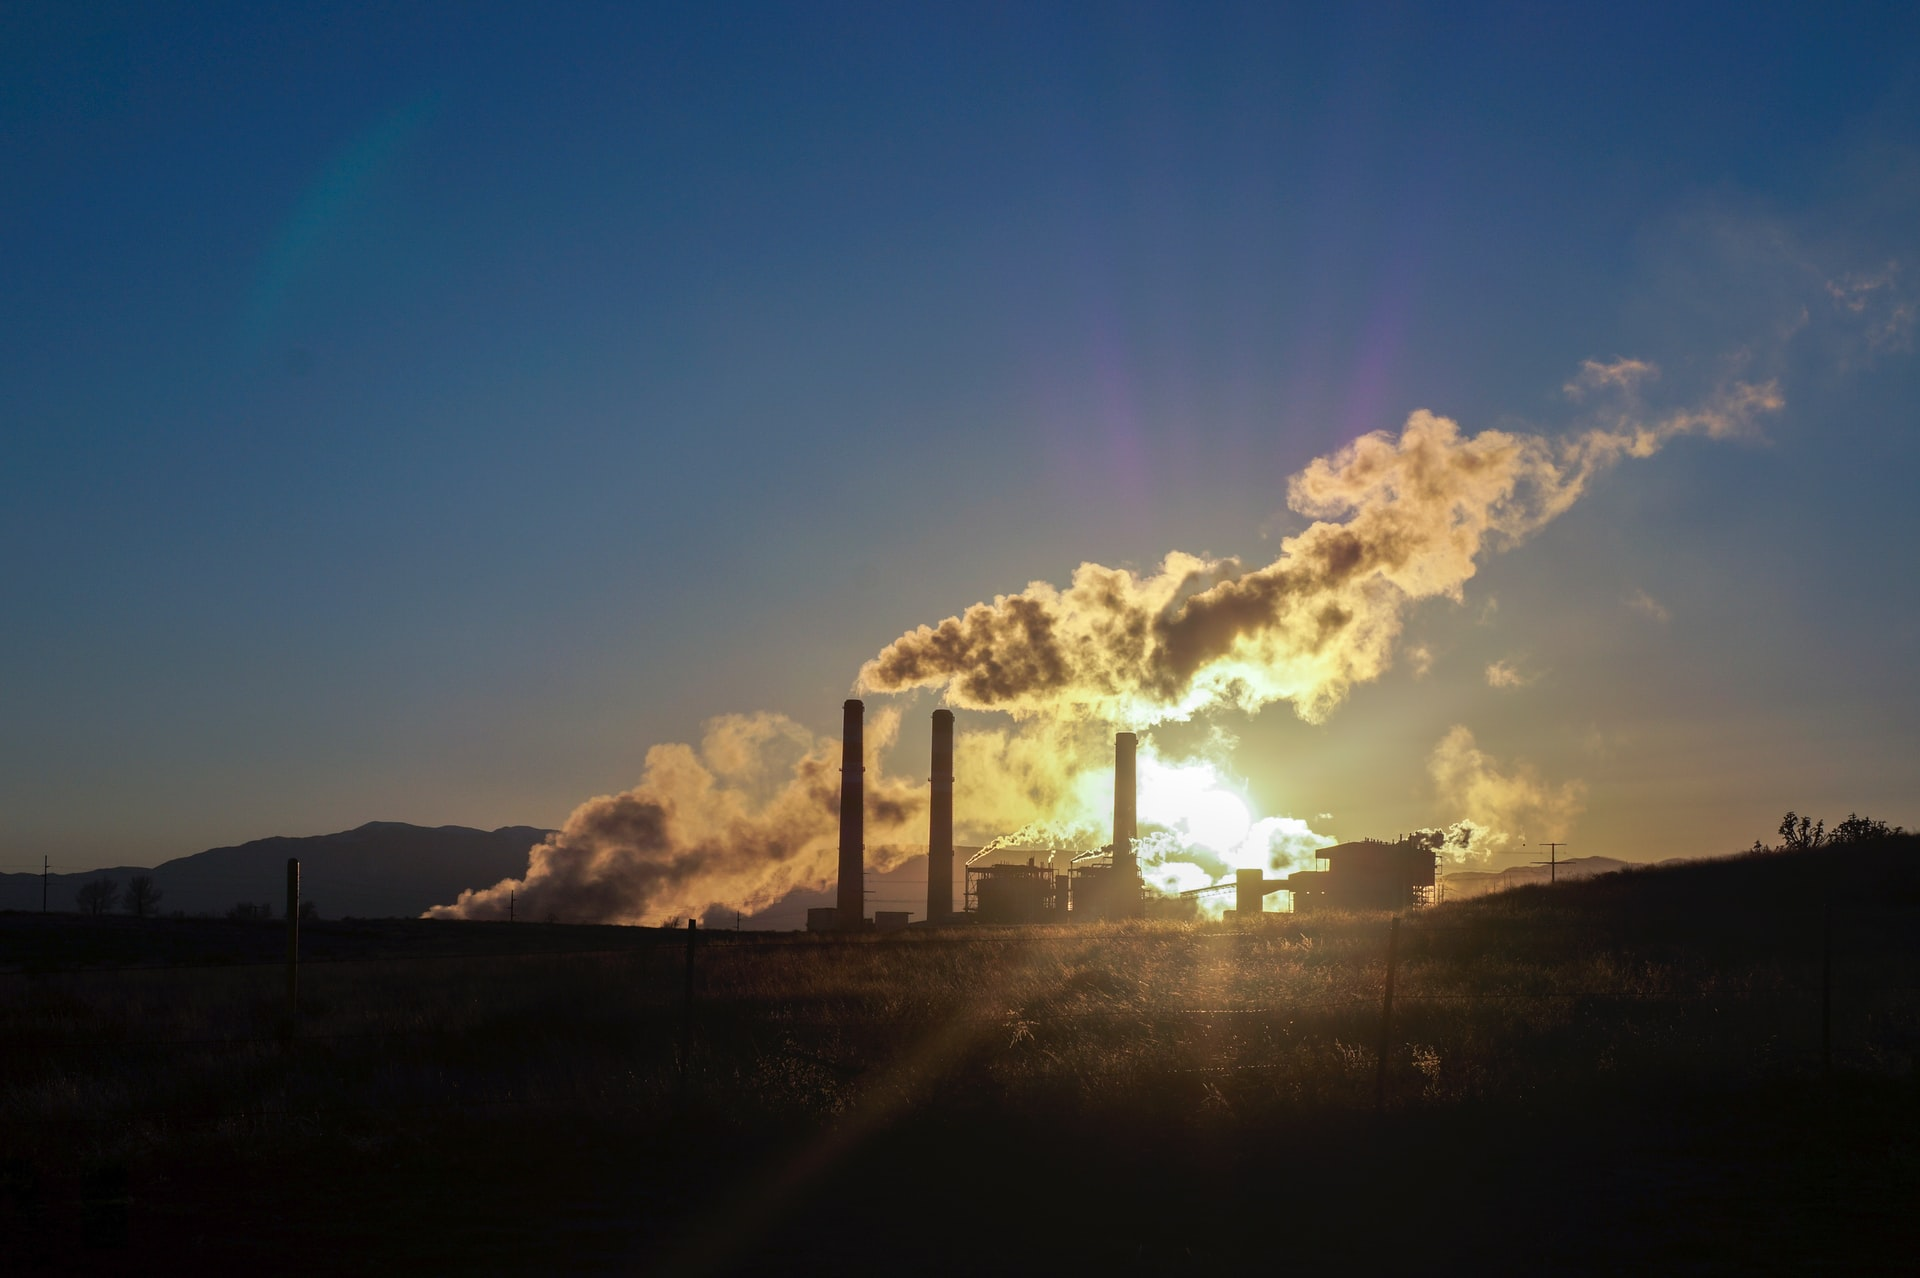 As the sun sets on the horizon, clouds of carbon dioxide are swept into the air. The CO2 is coming out of thin, dark towers.